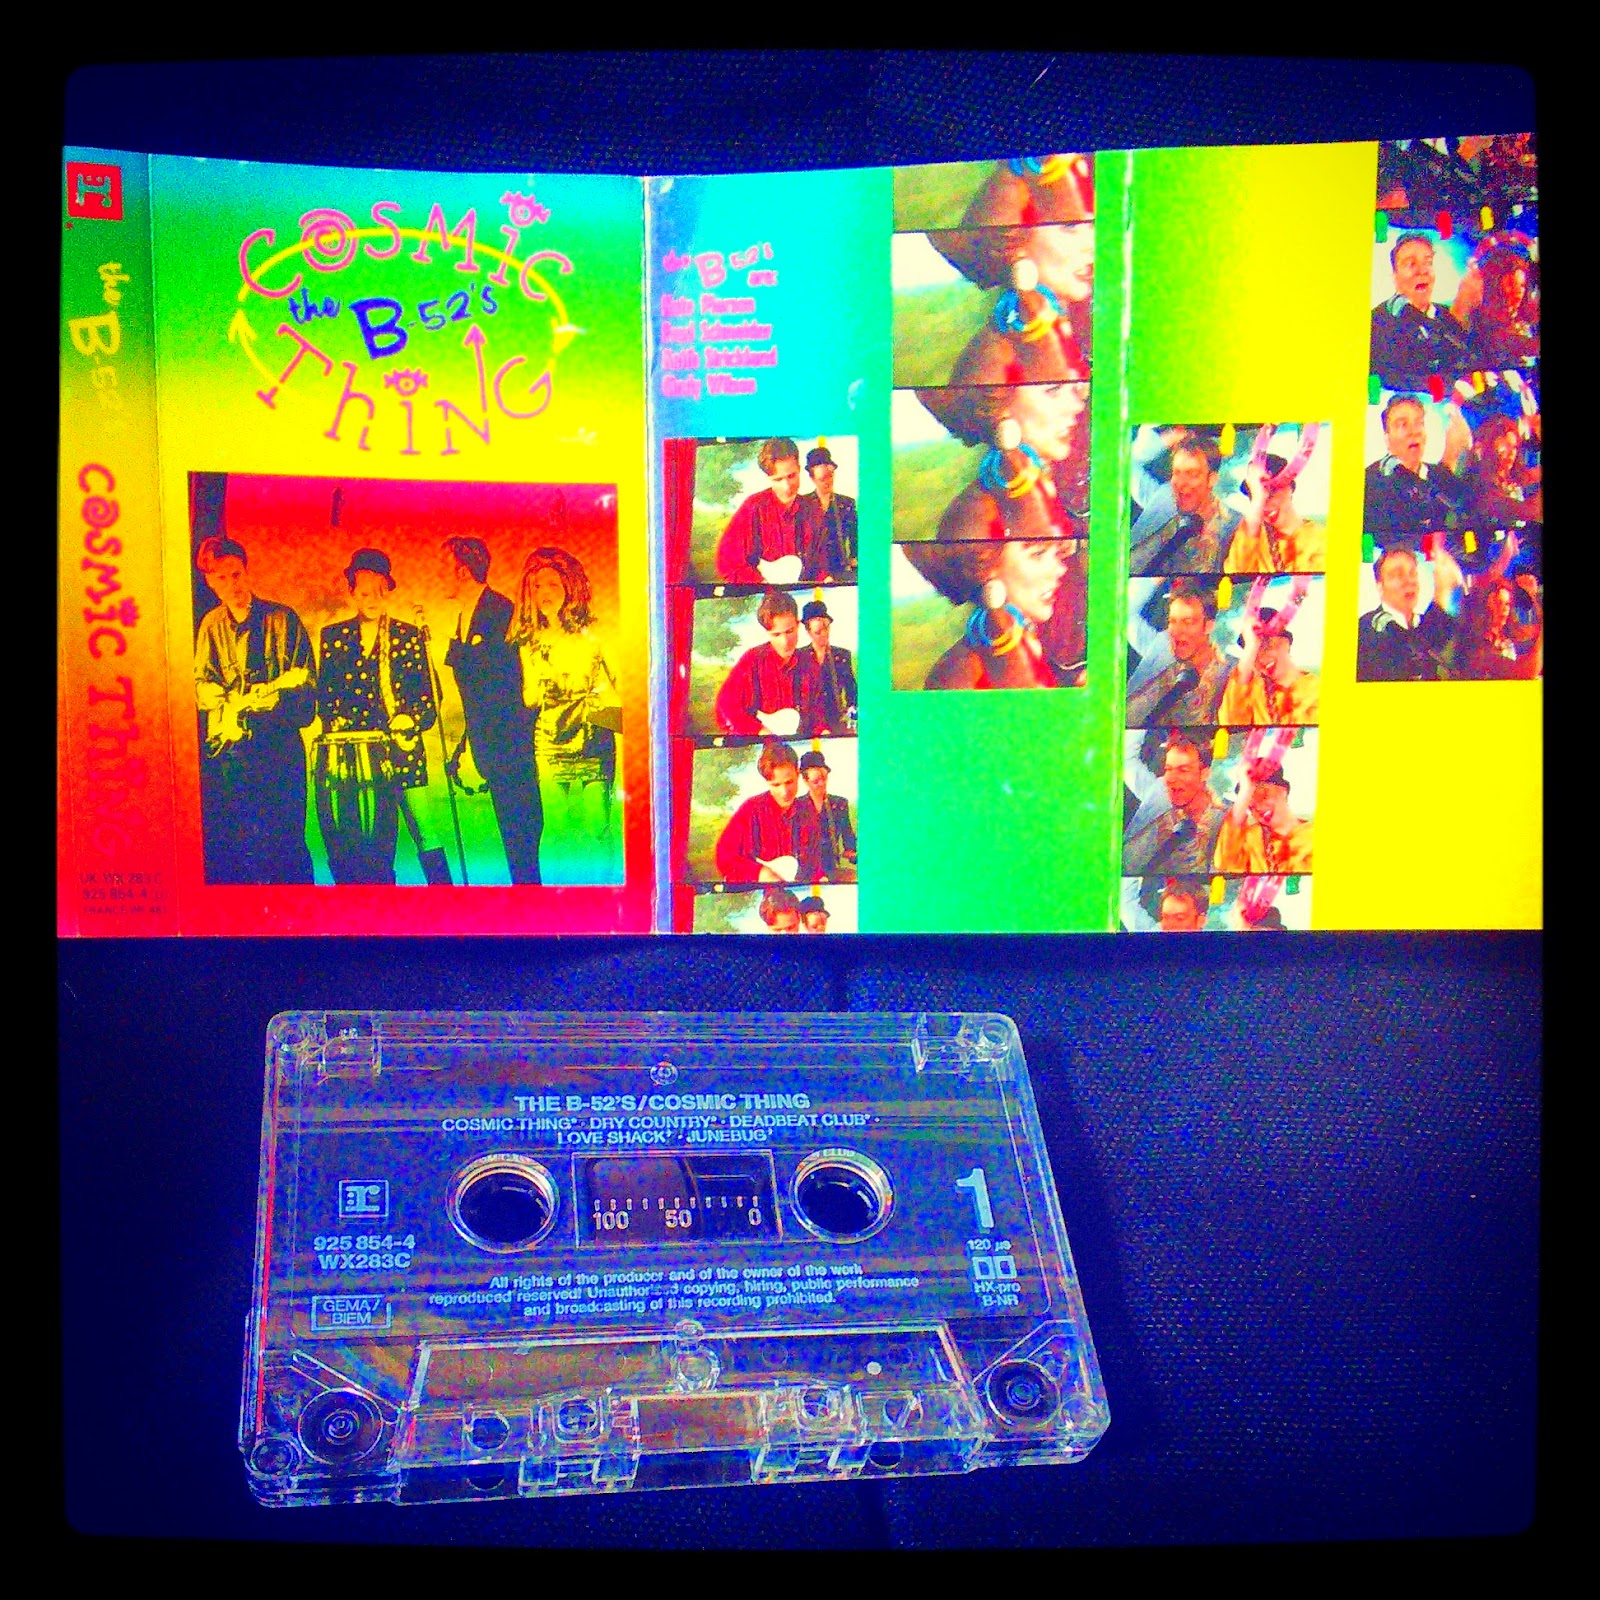 B-52's Cosmic Thing 25 years old today  k7 audio